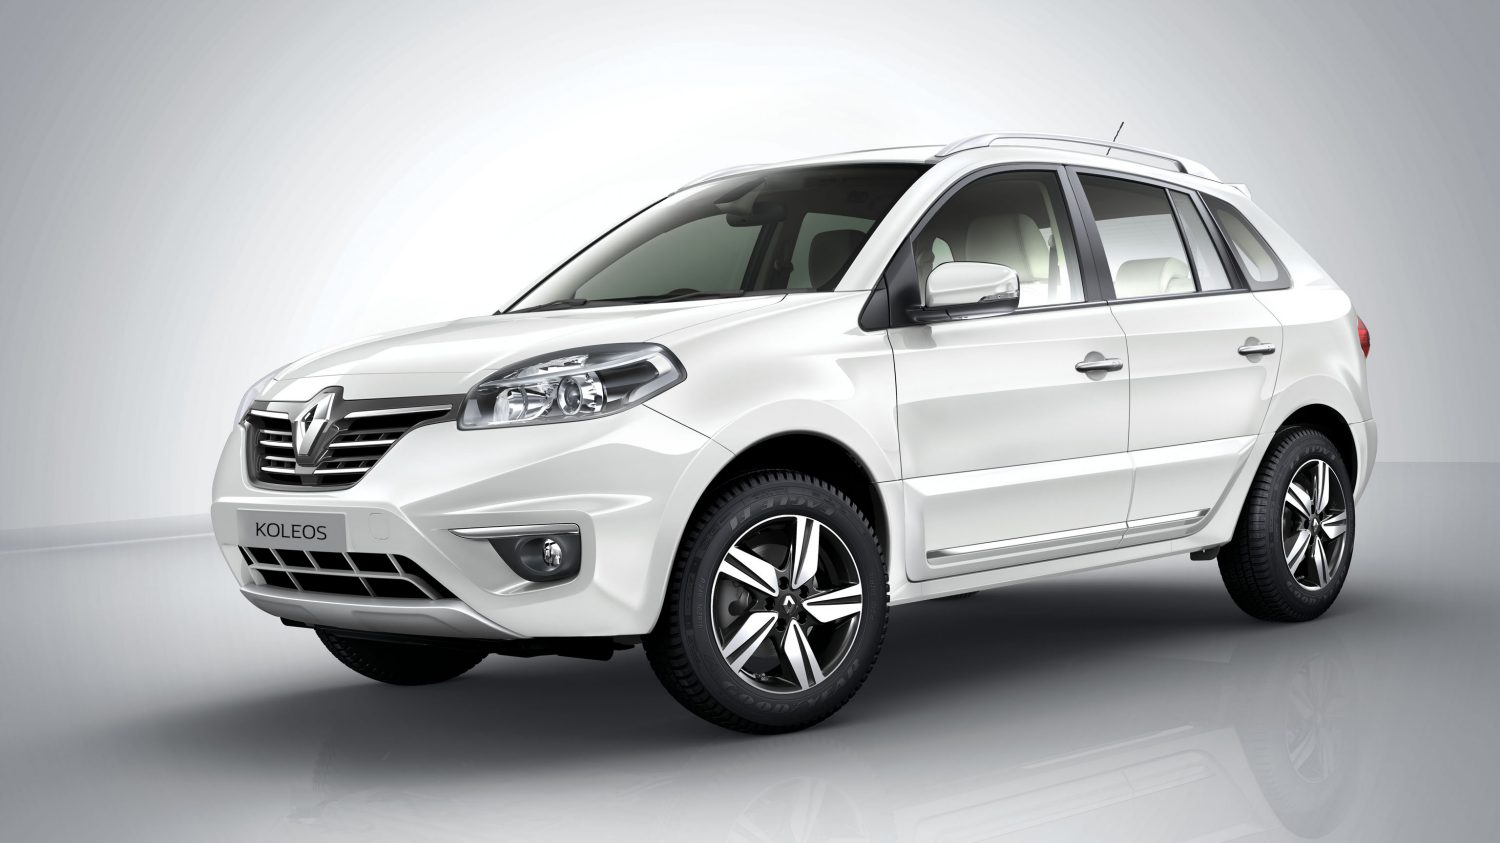 2017 renault koleos to be unveiled in beijing suv news. Black Bedroom Furniture Sets. Home Design Ideas